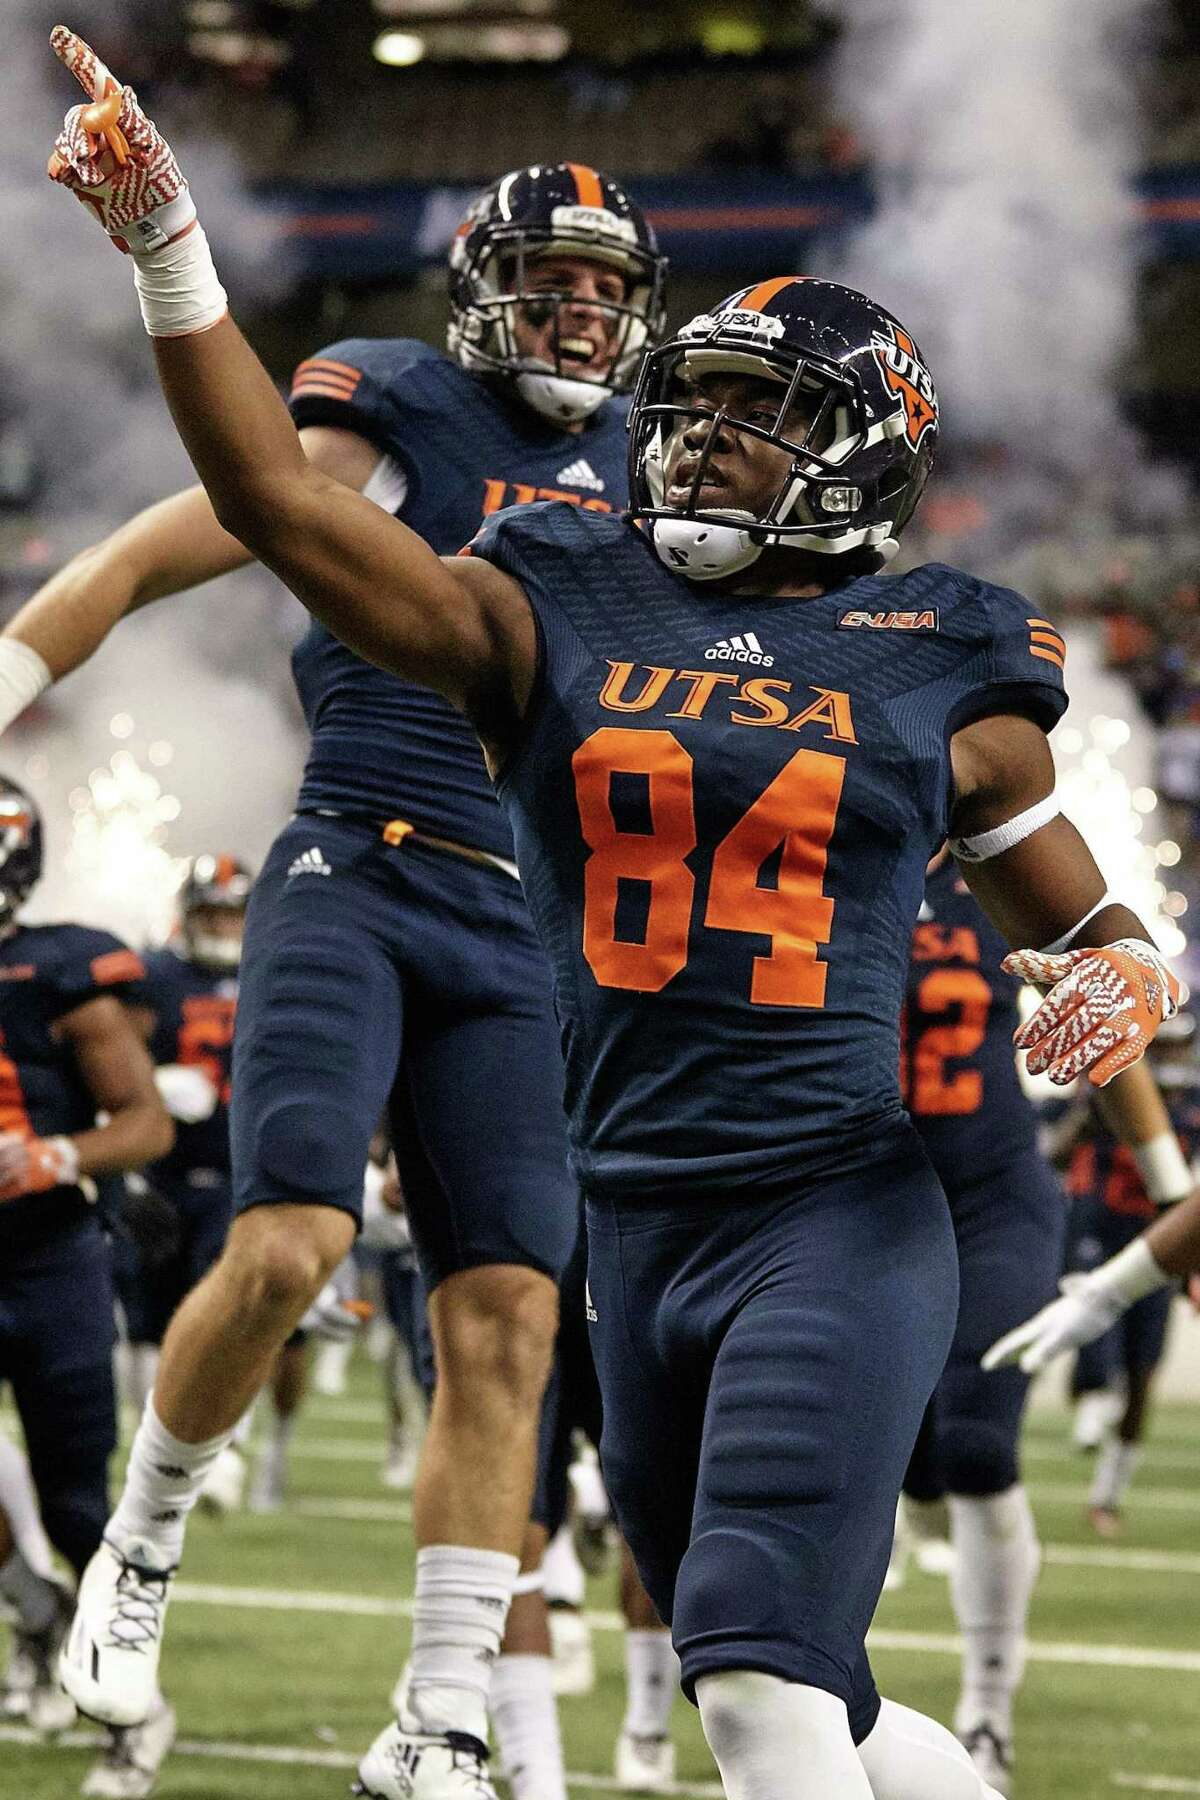 UTSA receiver Larry Stephens celebrates as the Roadrunners take the field at the Alamodome to face Charlotte on Nov. 26, 2016, at the Alamodome.